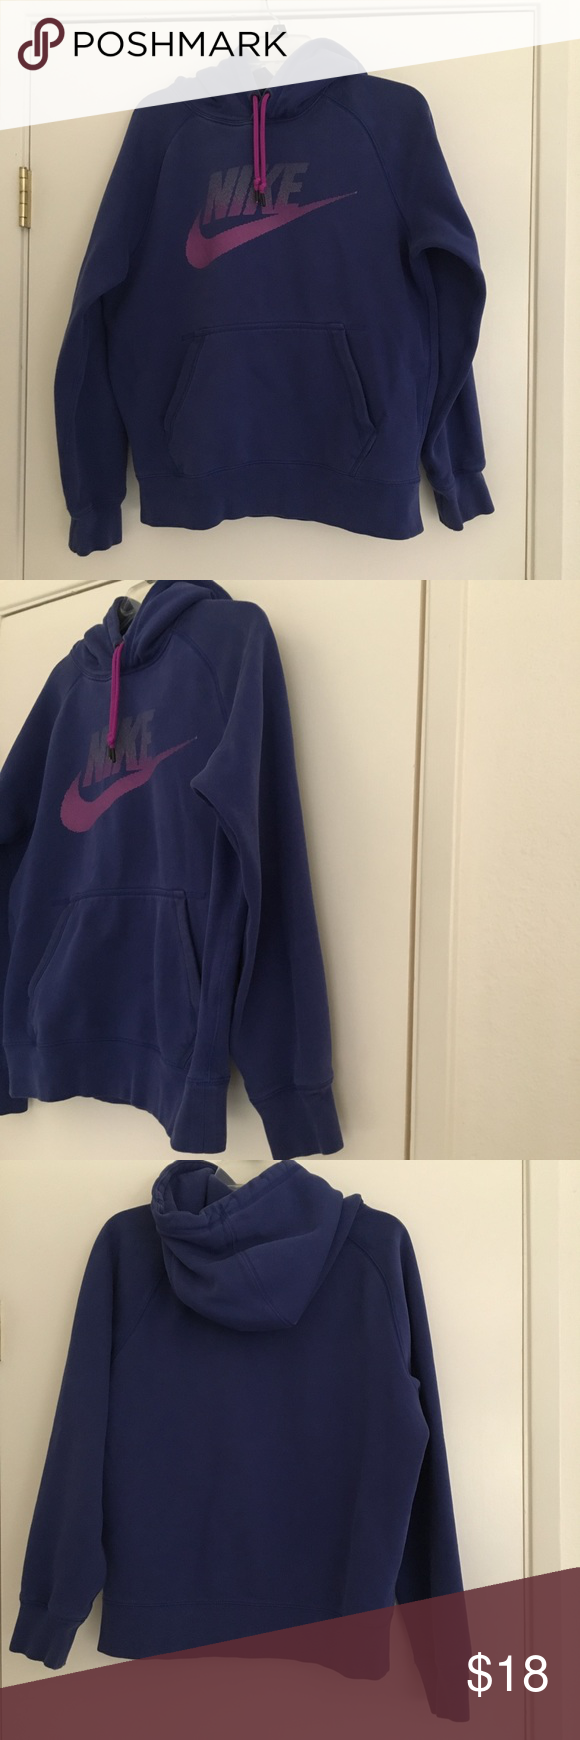 Nike logo pull over thick hoodie Size small Hoodies